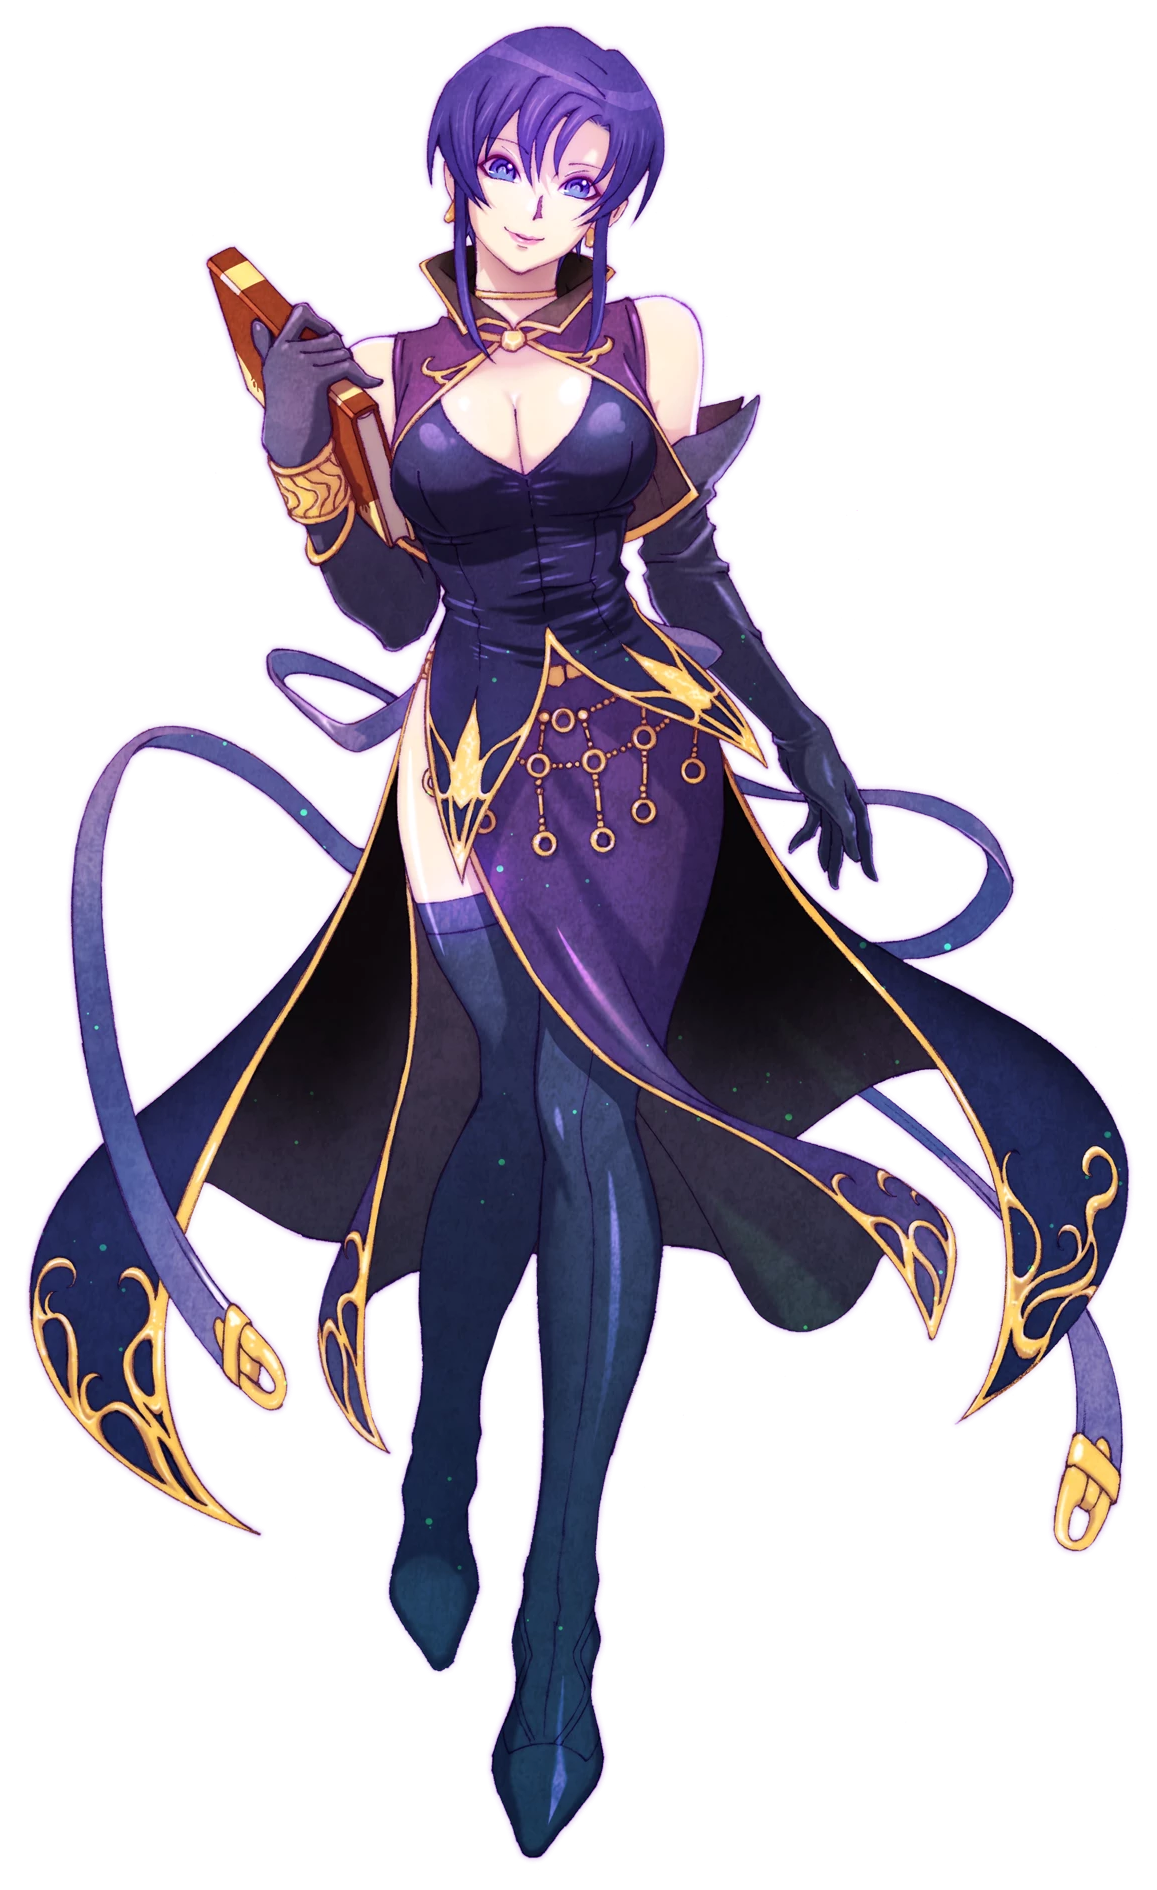 image royalty free stock Ursula drawing concept art. Fire emblem heroes from